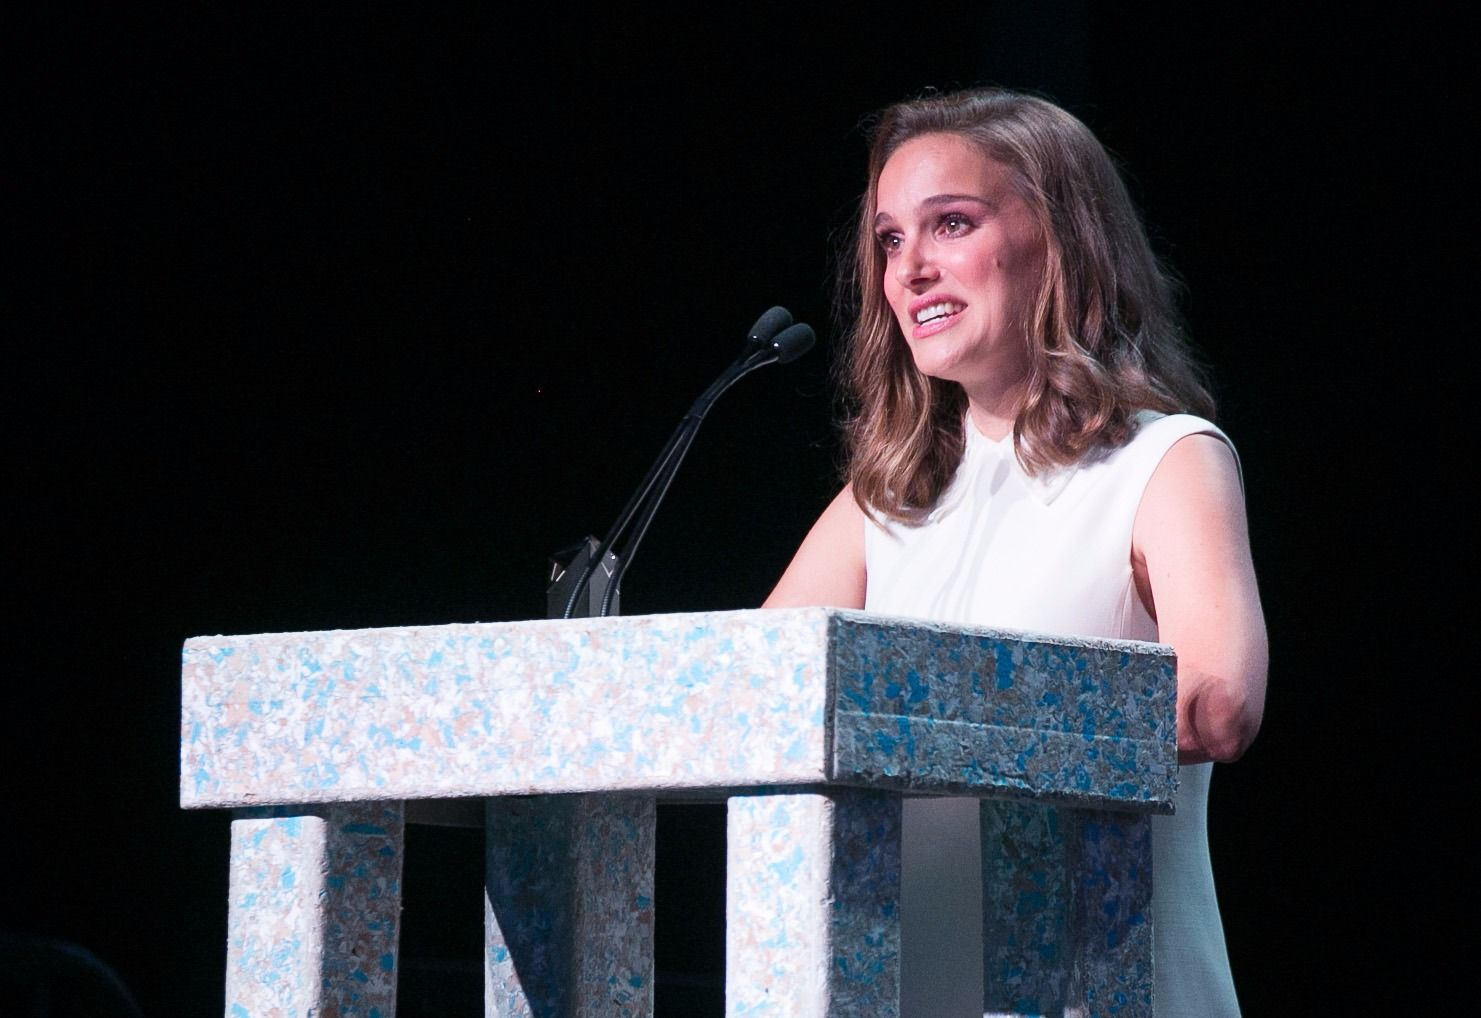 Natalie Portman speaks out: 'I have 100 stories' about sexual harassment